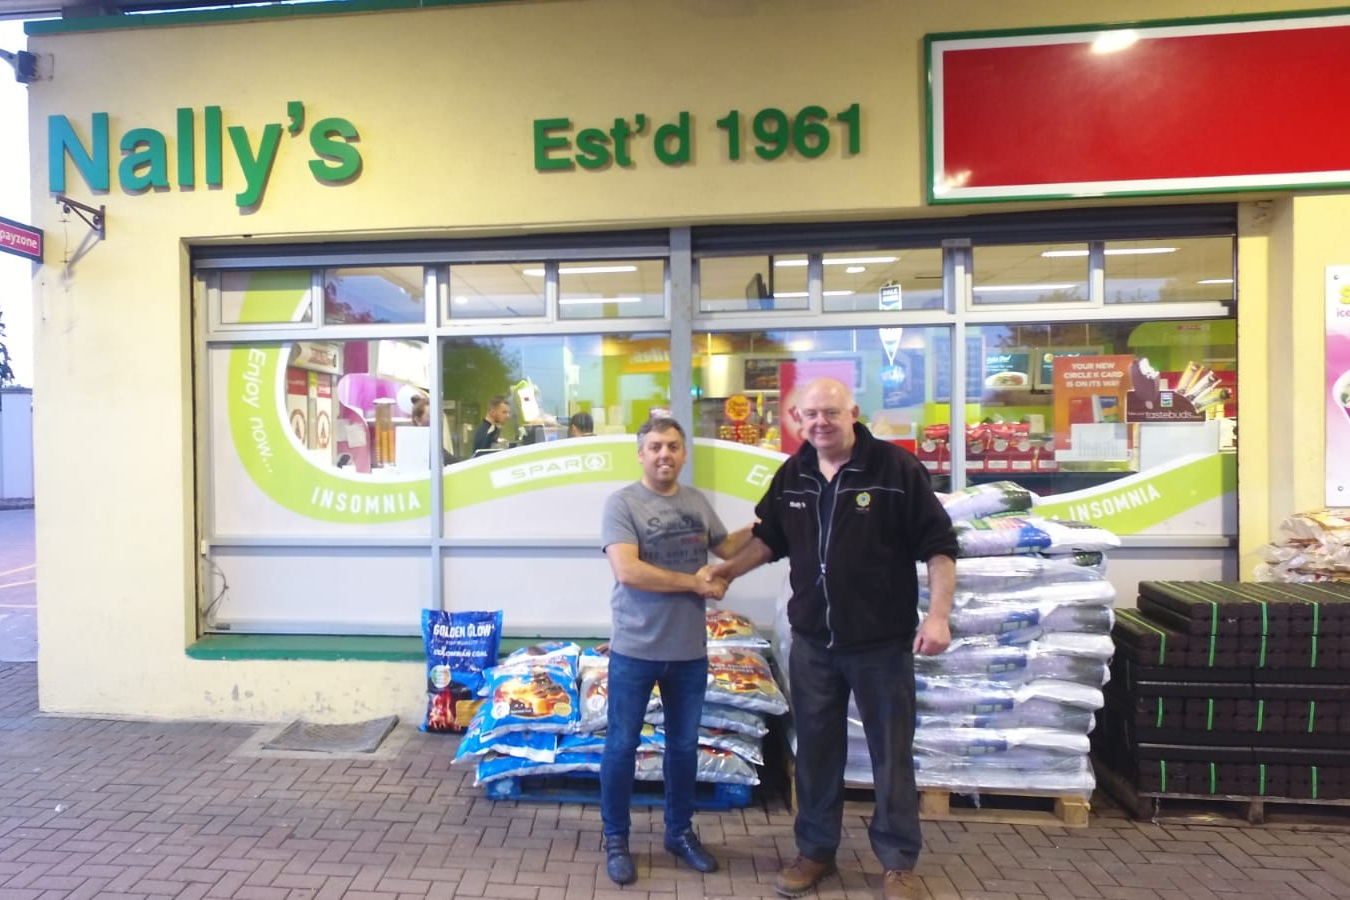 Nally's Circle K / Spar, Ballymahon, Co. Longford - John Nally of Nally's Circle K / Spar, Ballymahon presenting Michael Kelly, Ballycastle AC with a cheque. Our sincere thanks to John and team.